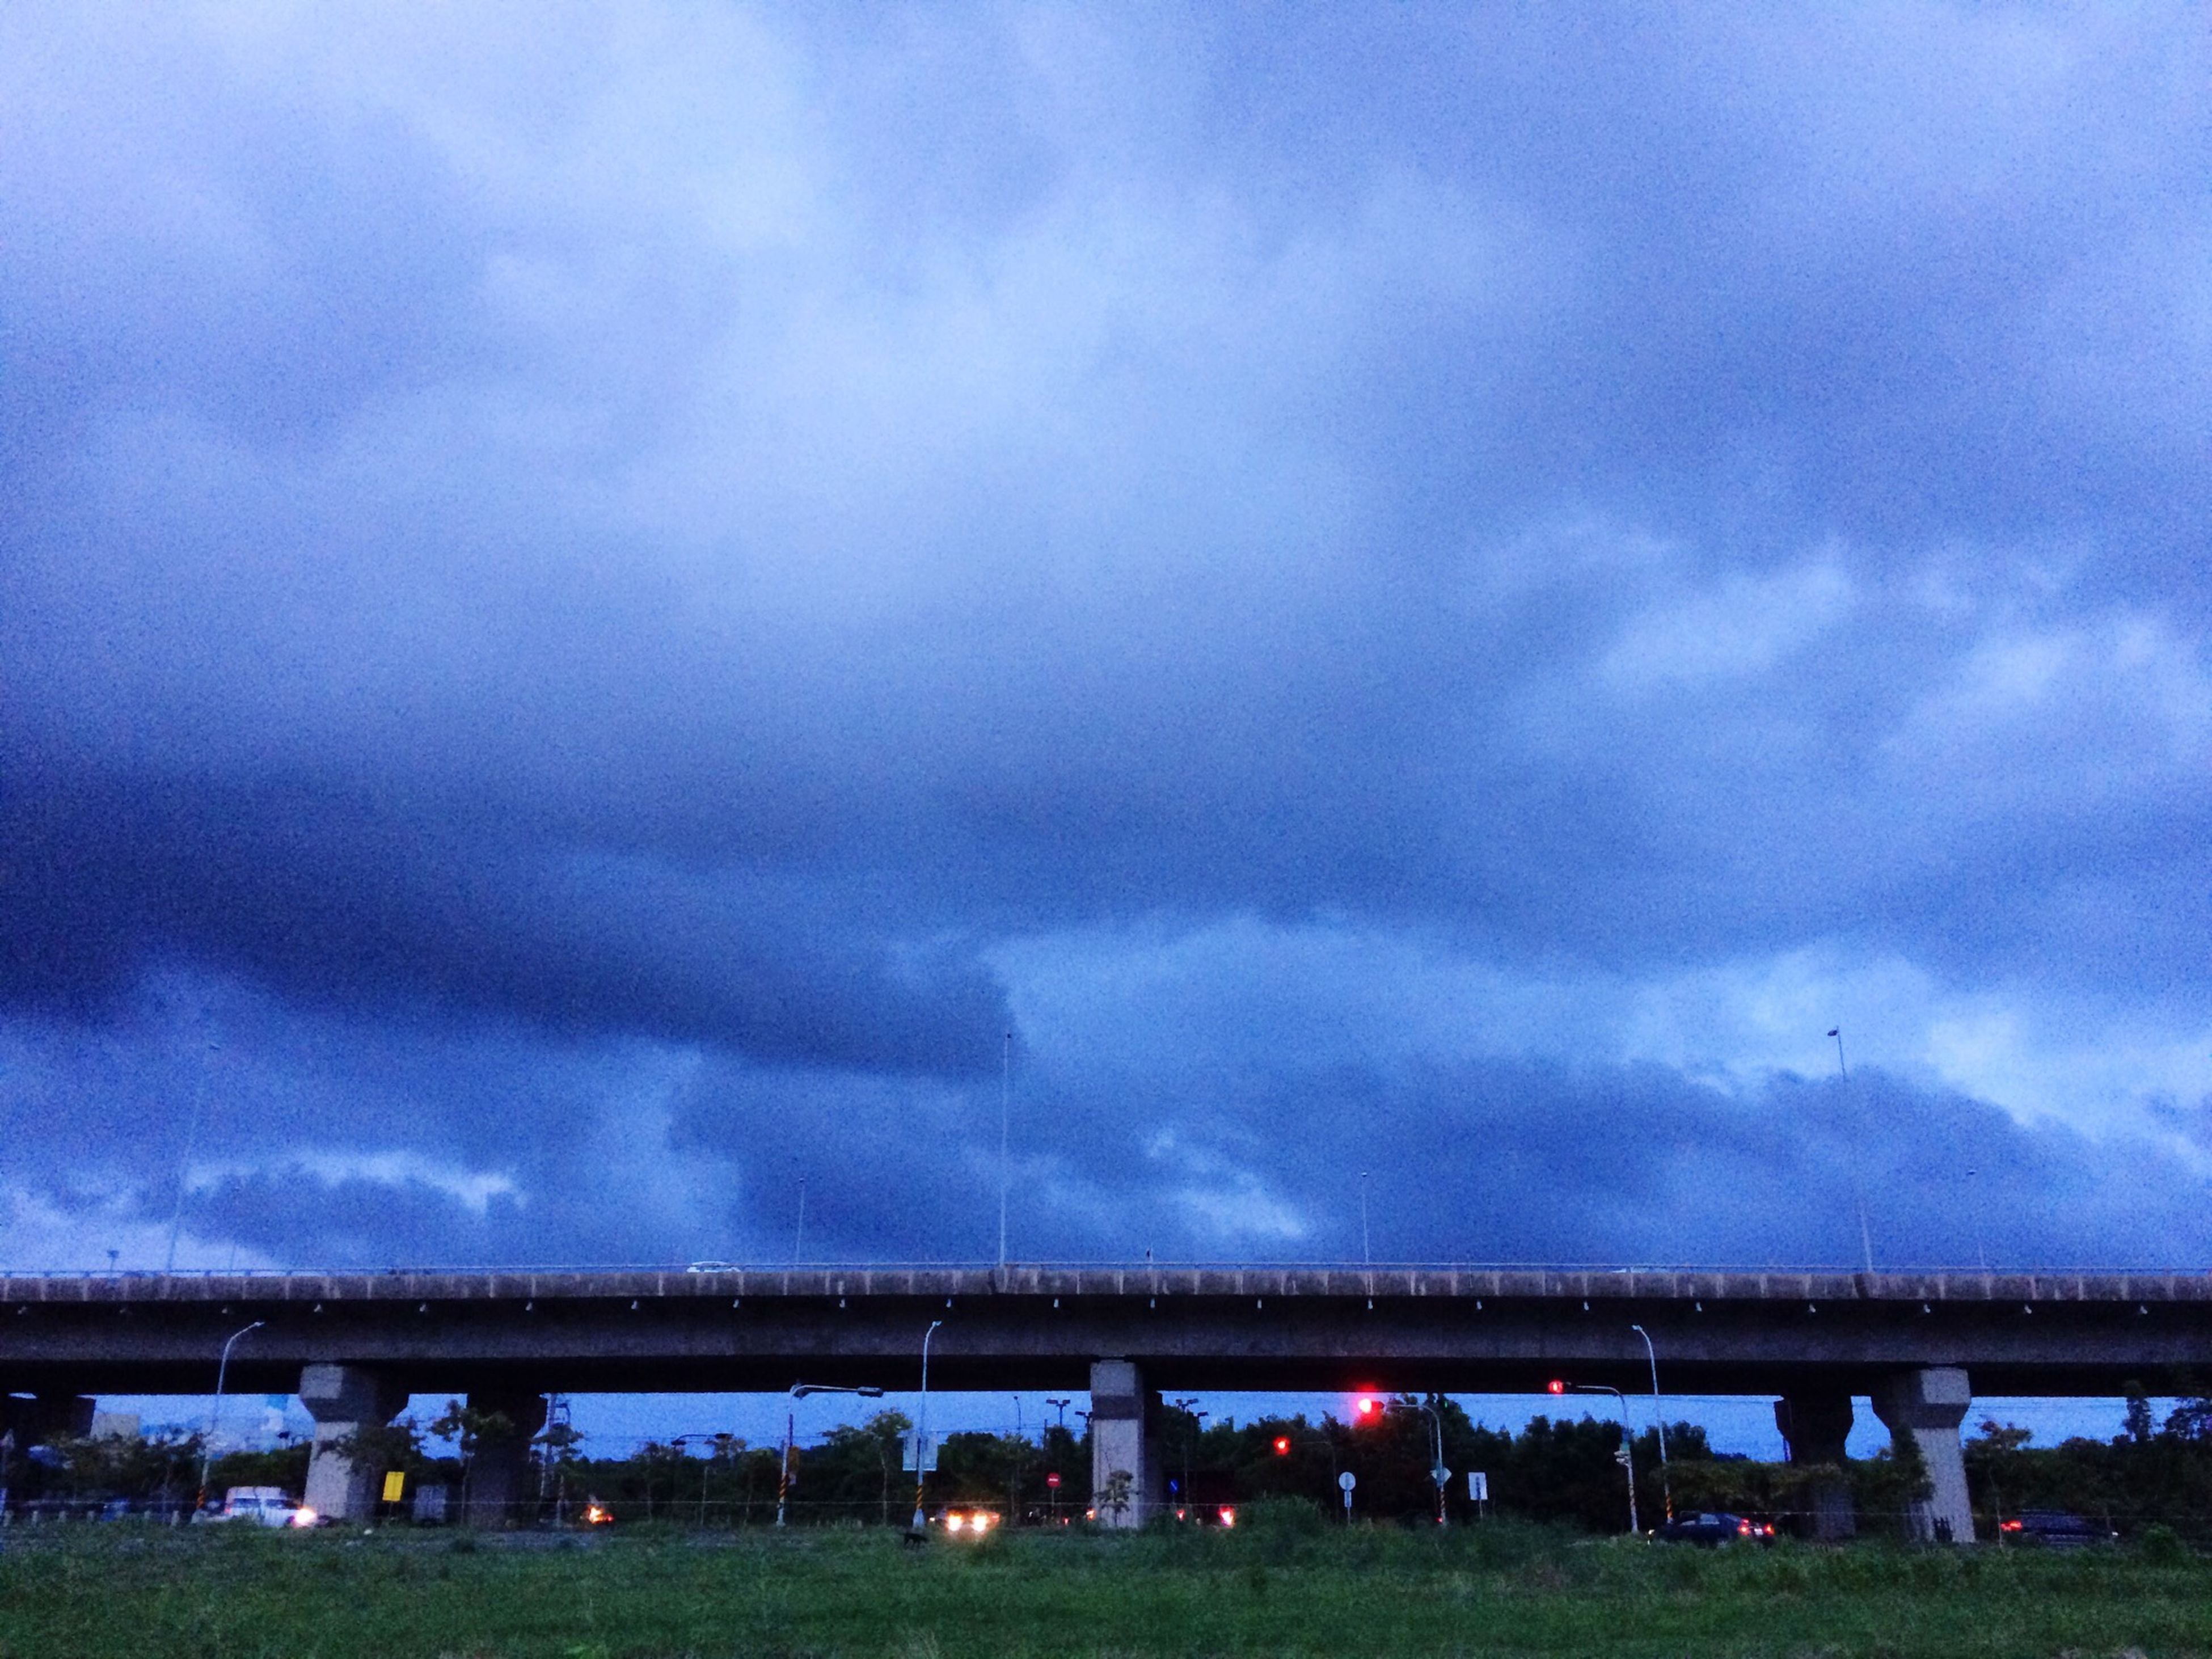 sky, cloud - sky, cloudy, connection, bridge - man made structure, built structure, architecture, transportation, cloud, weather, bridge, engineering, overcast, nature, river, day, outdoors, storm cloud, tree, tranquility